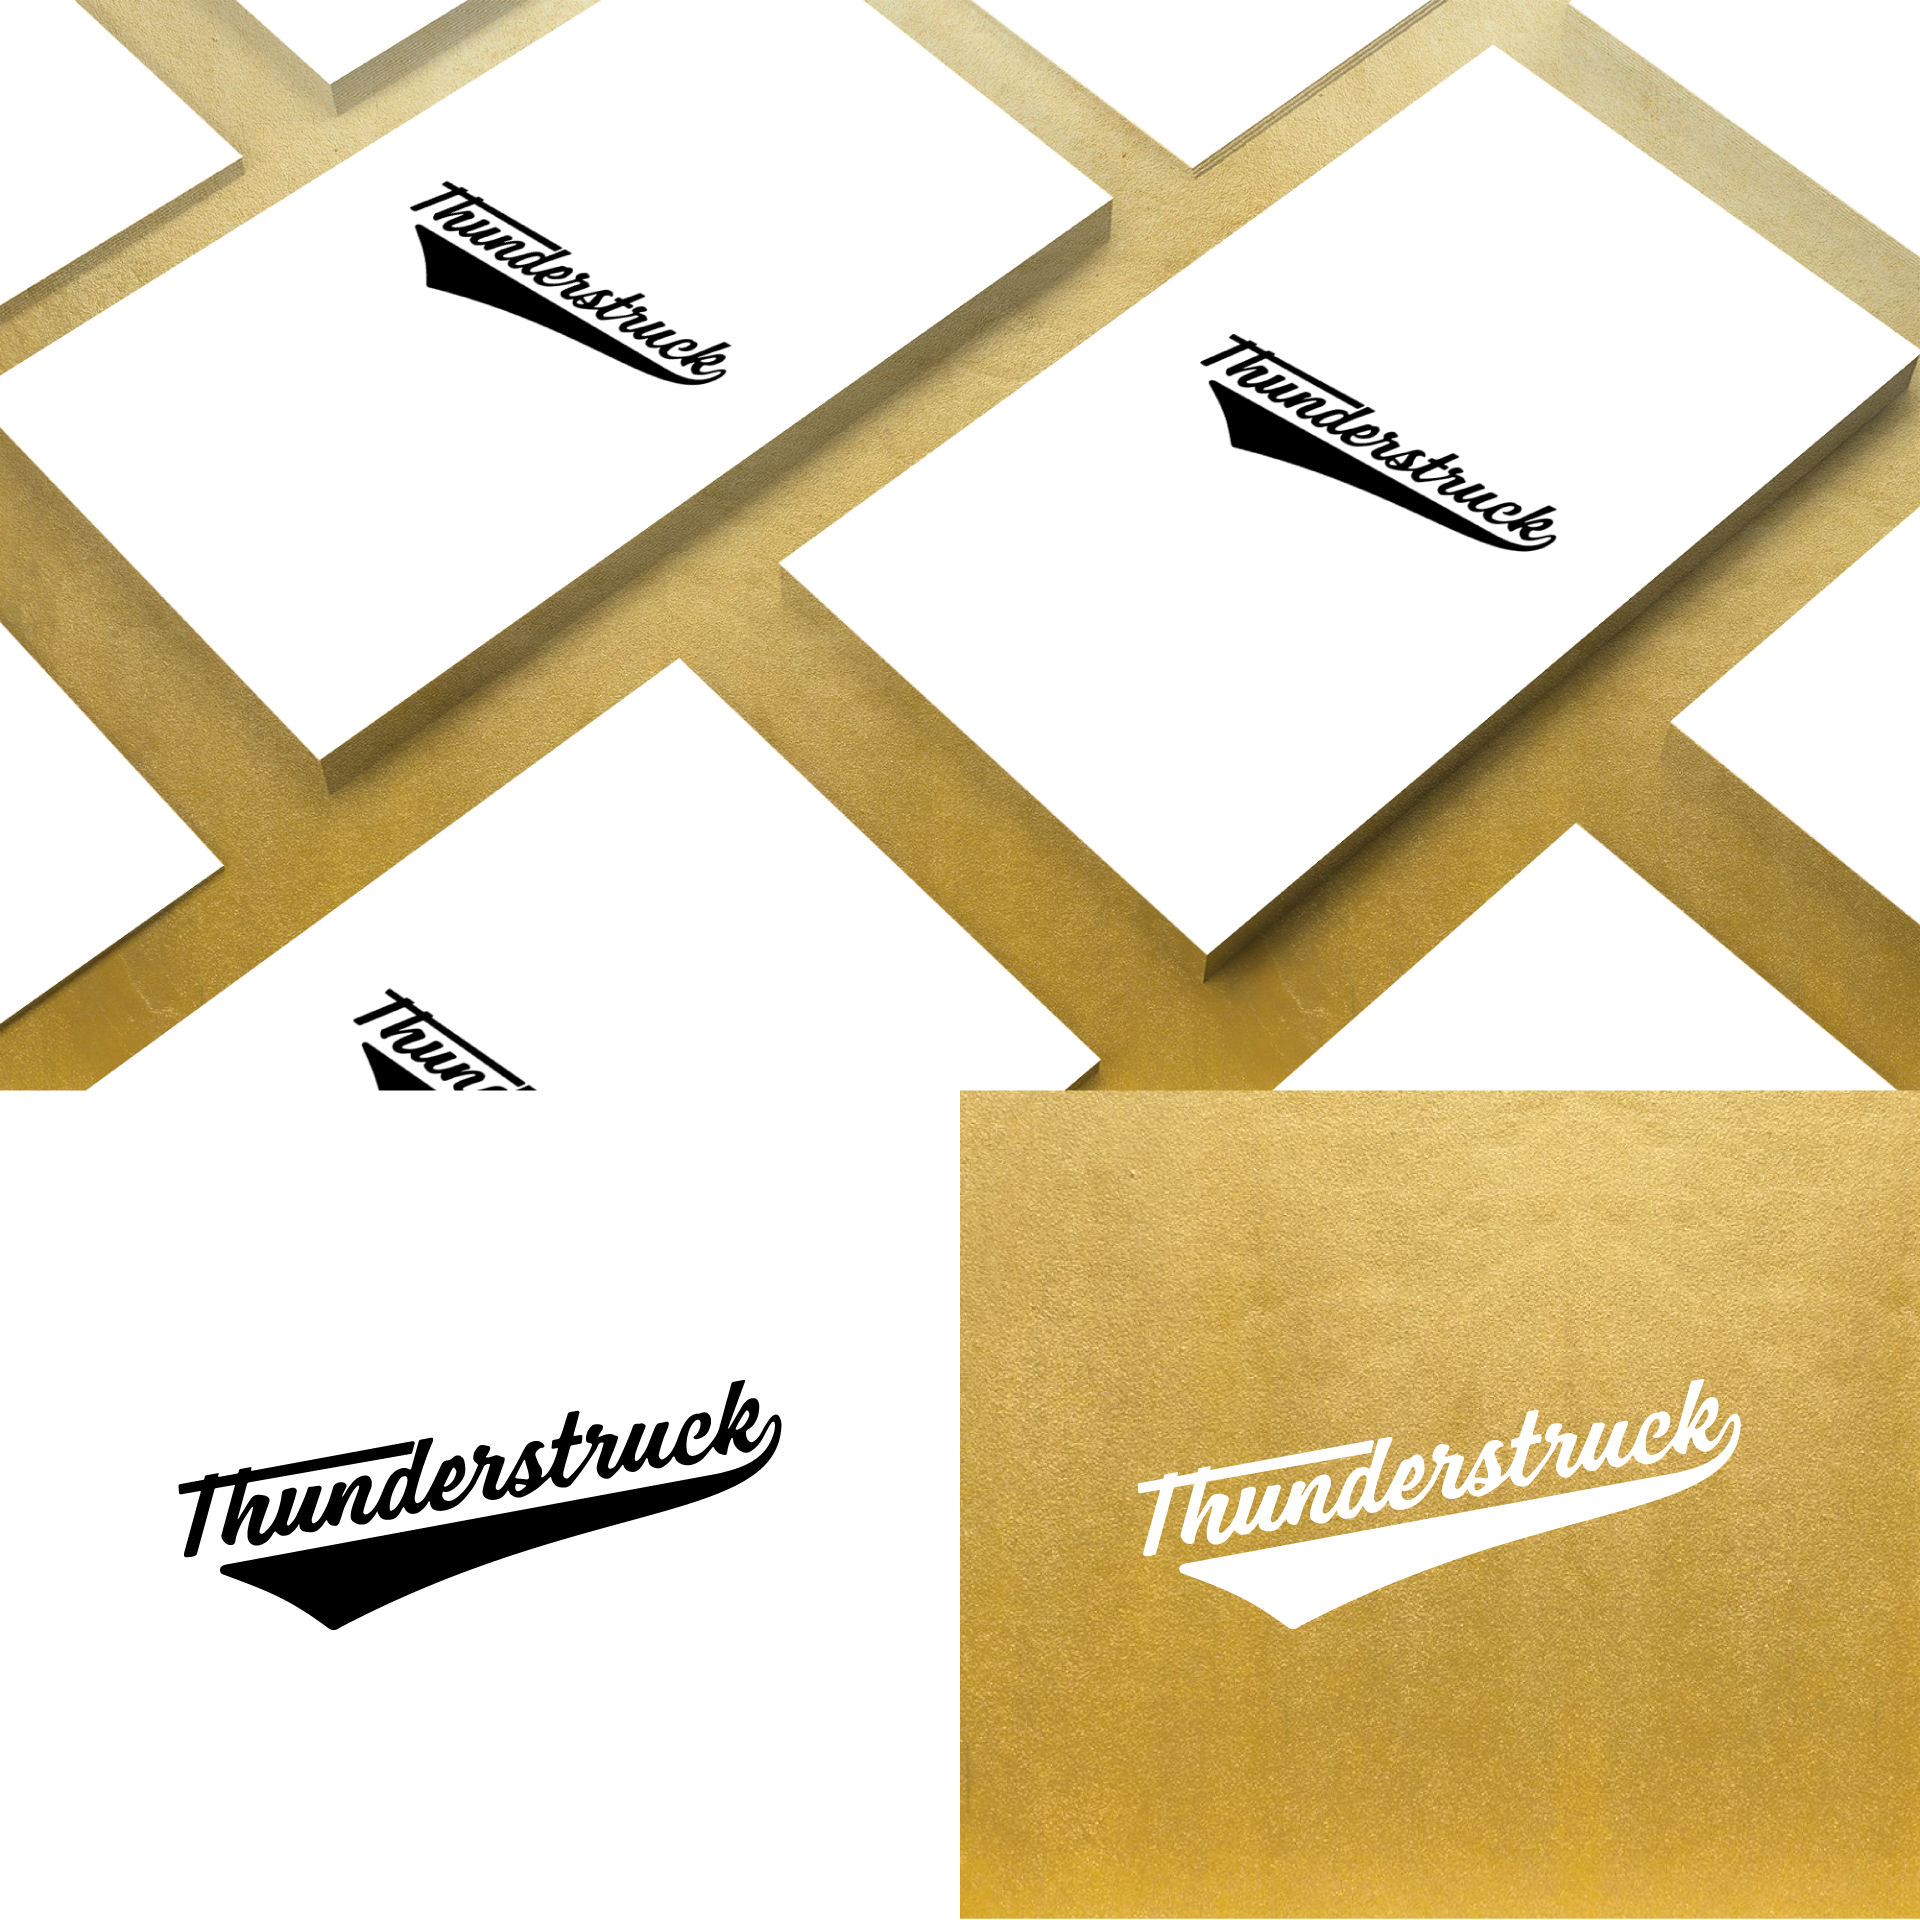 thunderstruck-square-01.png